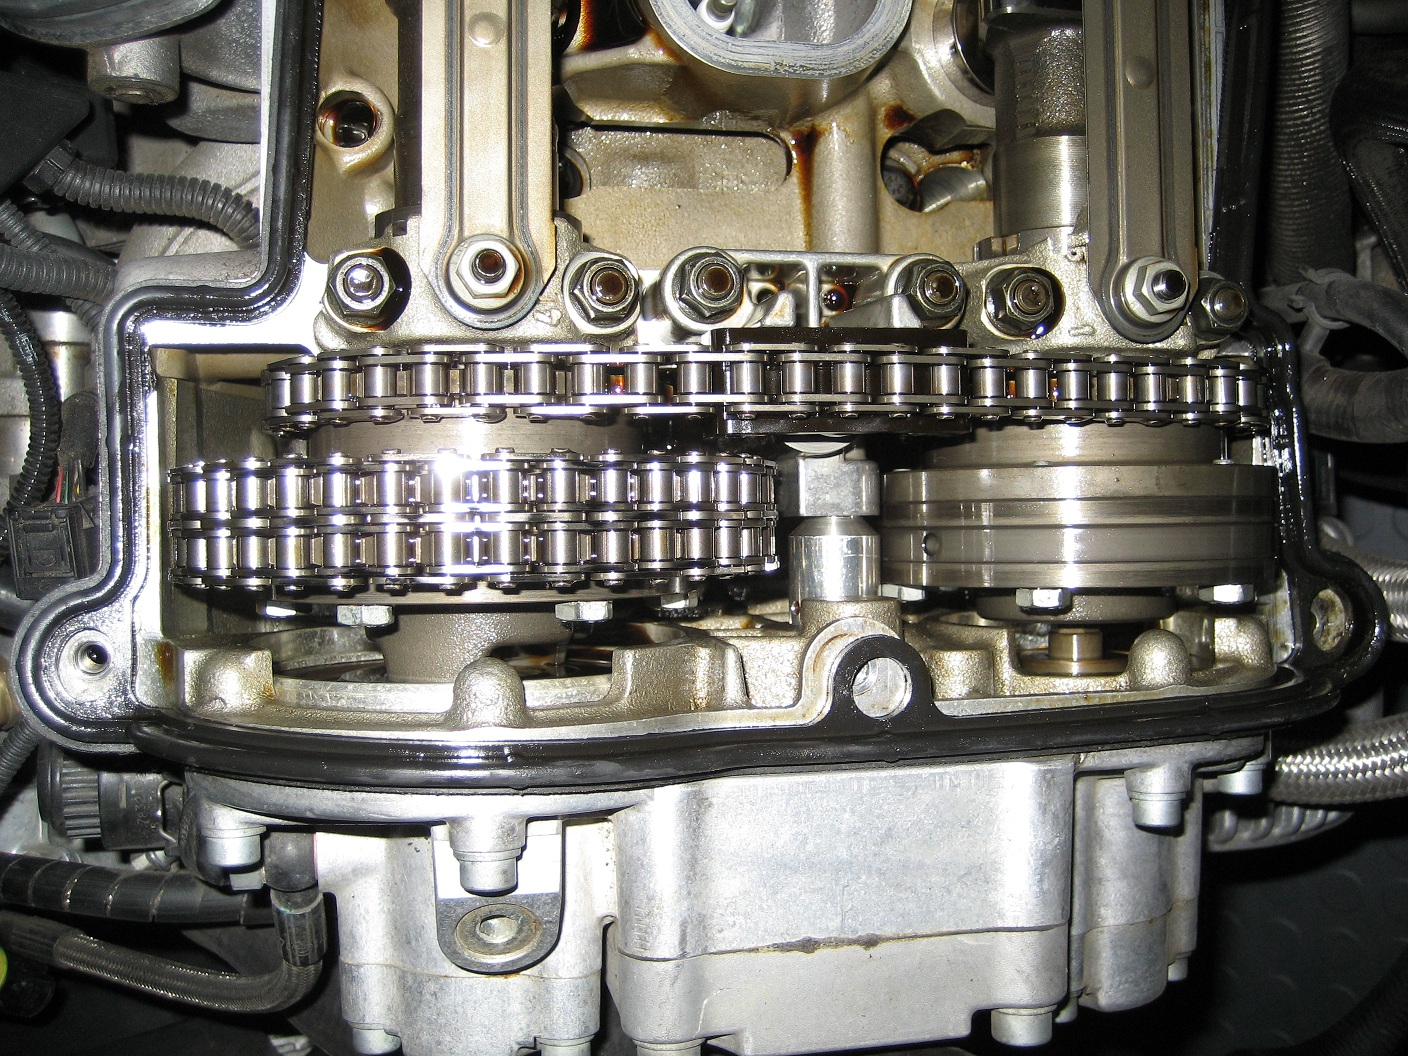 Engine making loud noise, what is it?-engine-002b.jpg